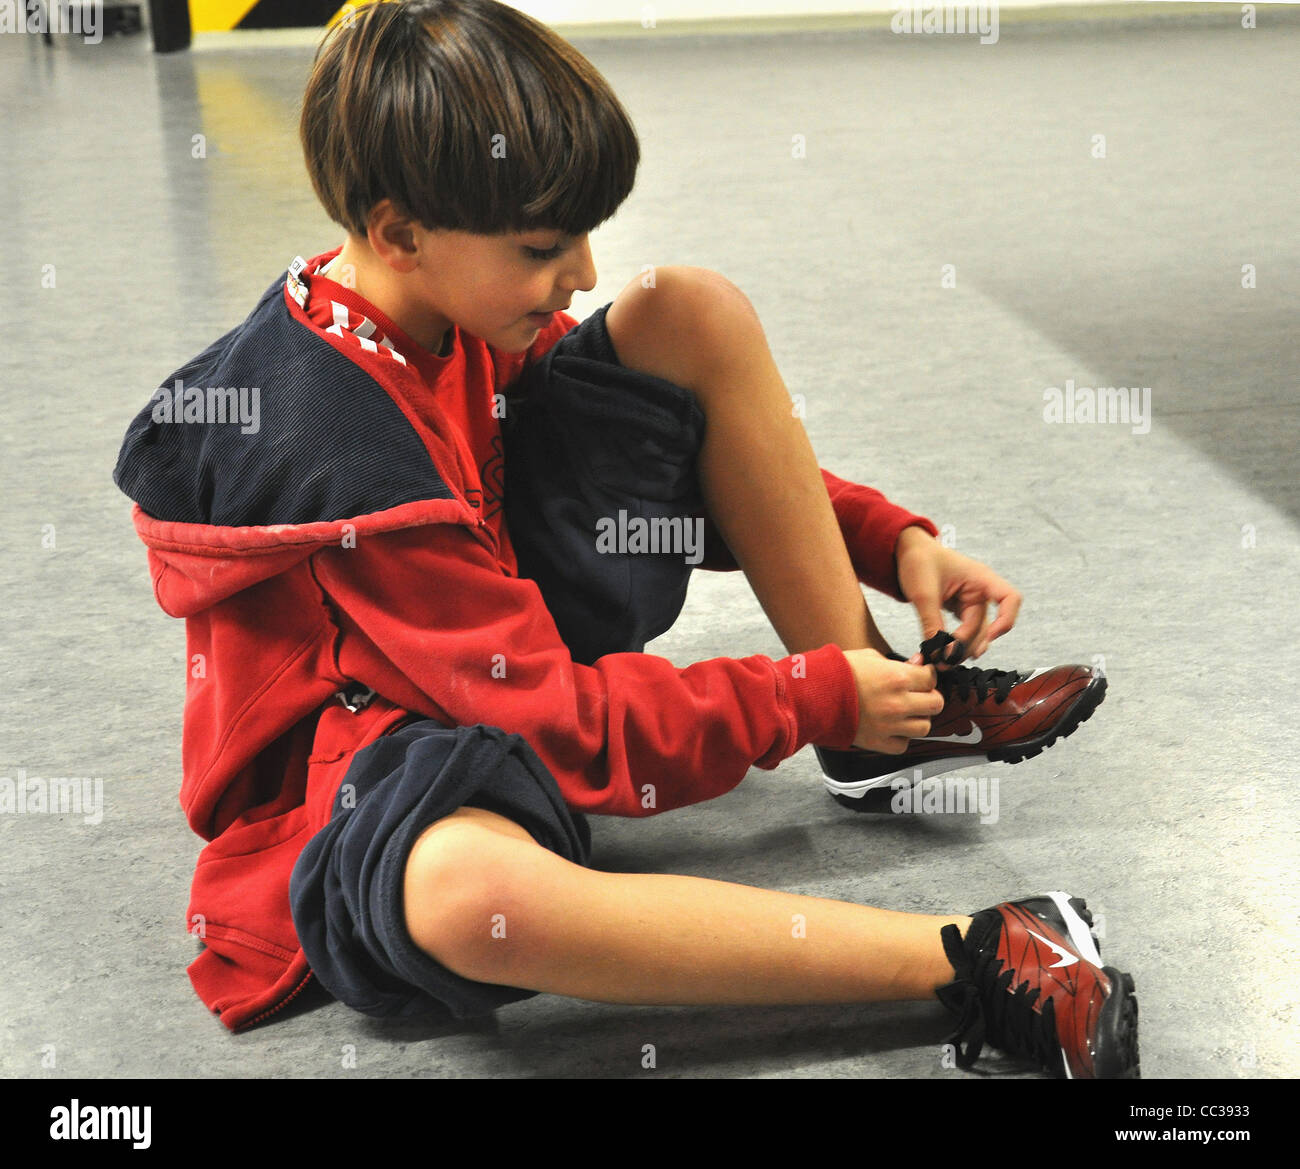 tying shoes and kid stockfotos tying shoes and kid bilder alamy. Black Bedroom Furniture Sets. Home Design Ideas